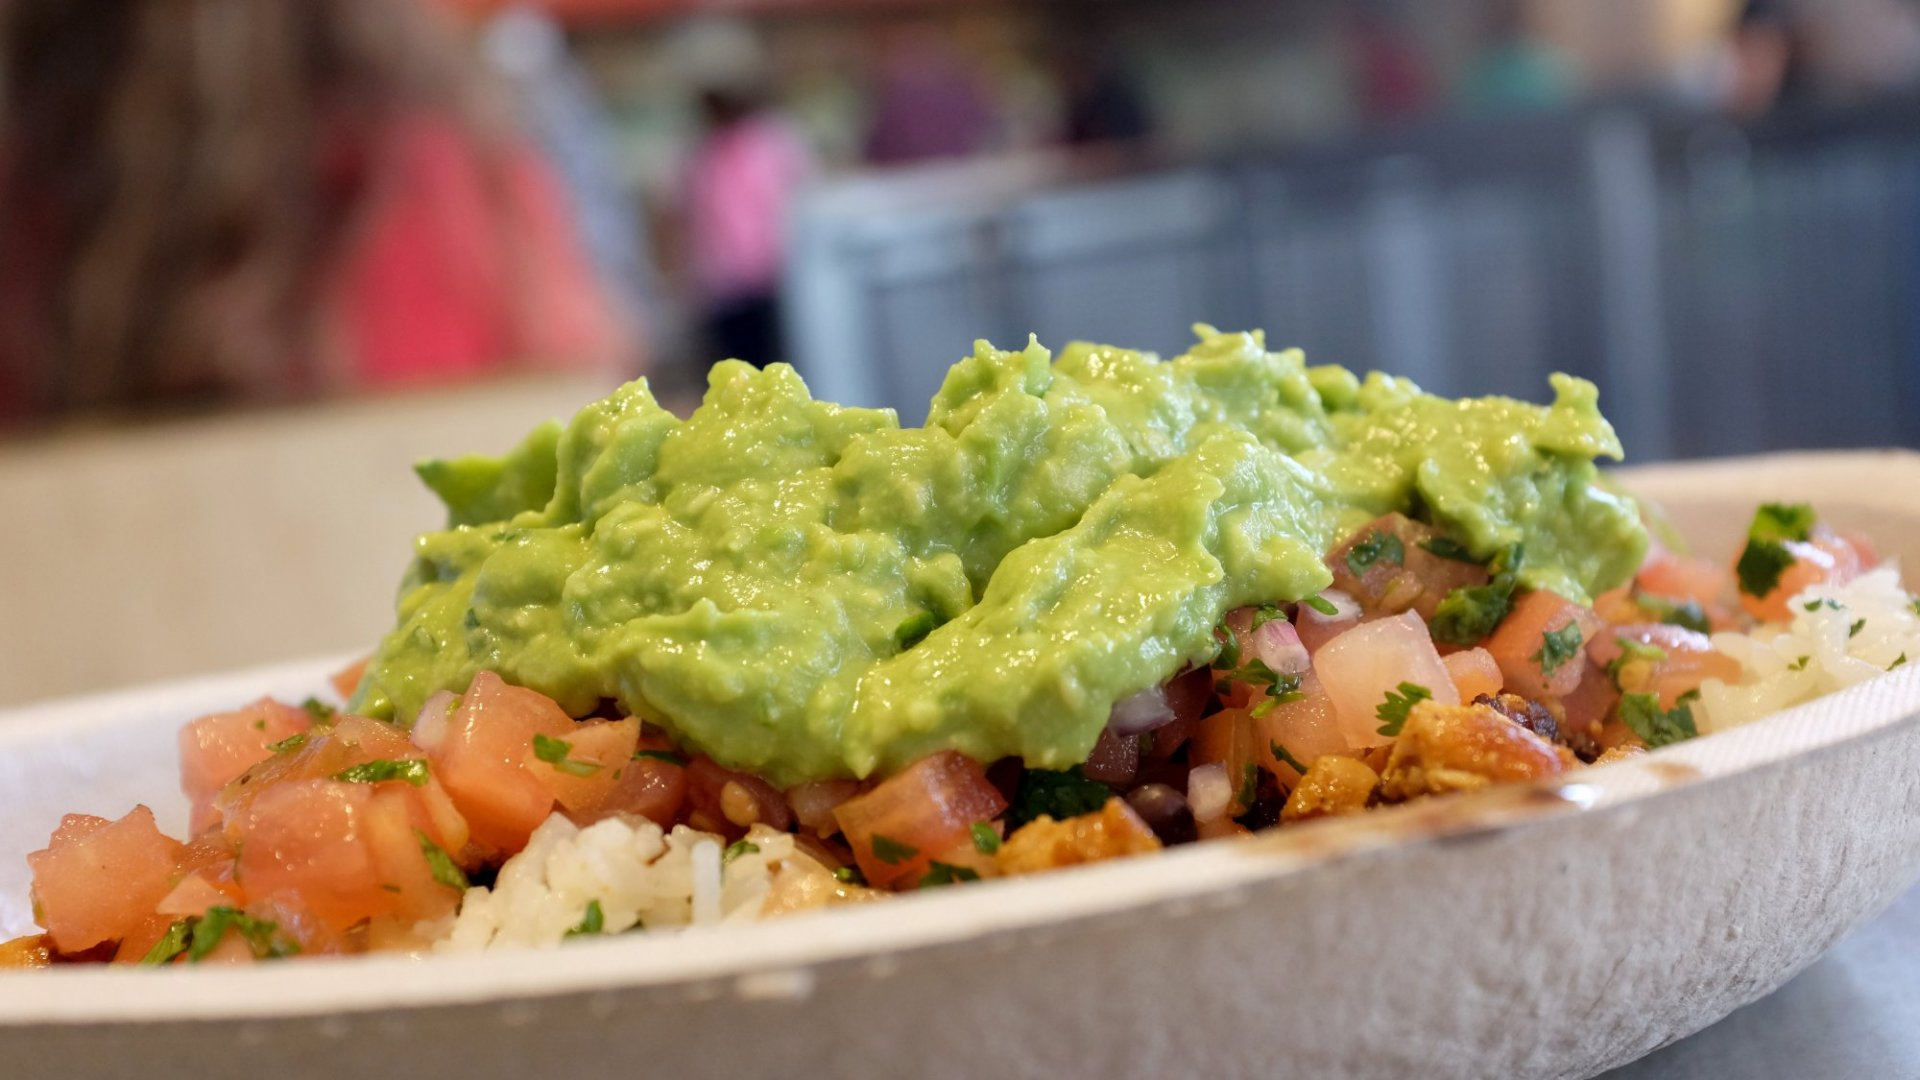 What You Can Learn From These 3 Innovative Chipotle Ideas